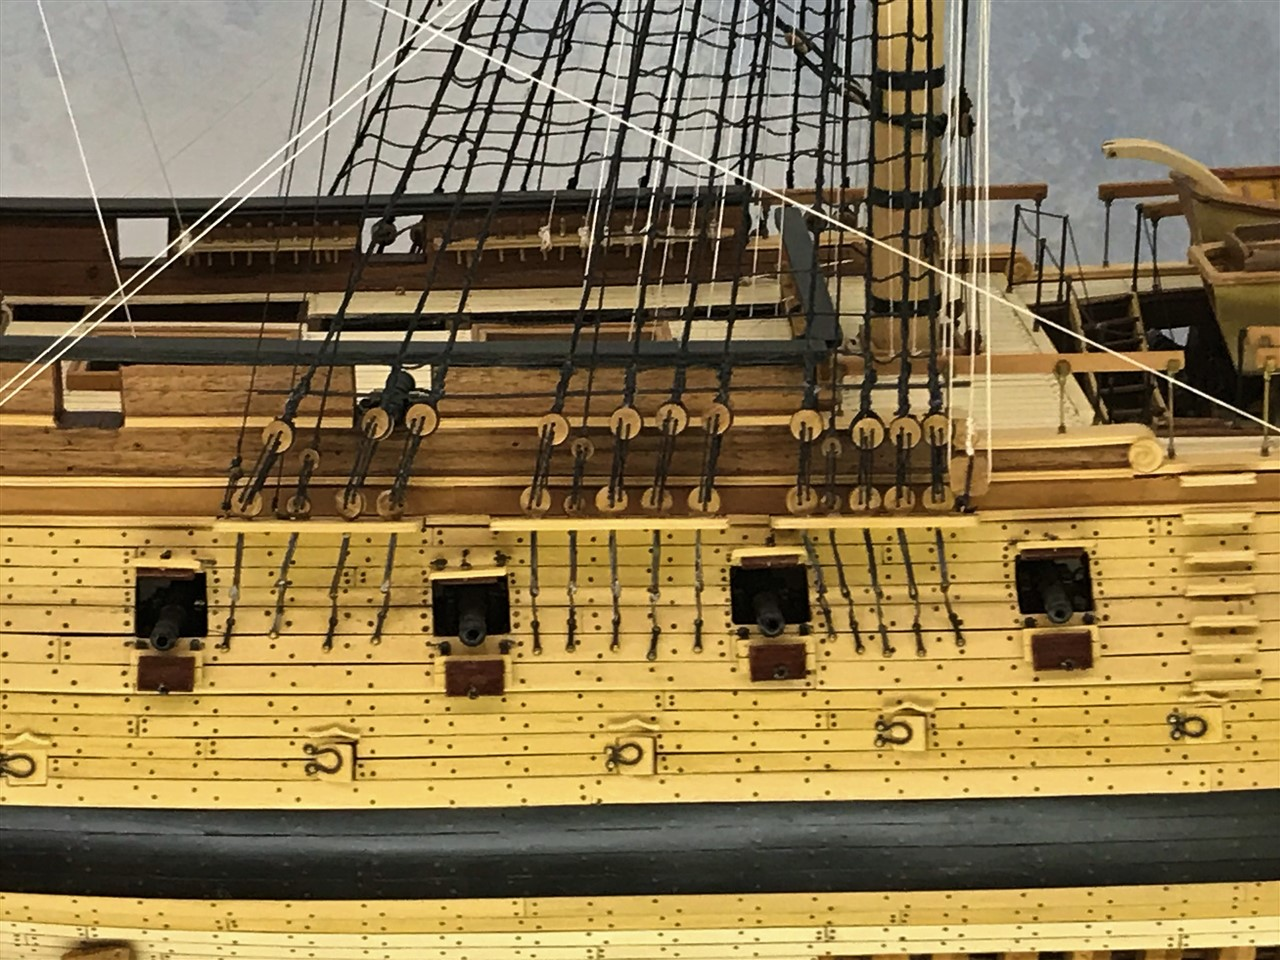 2018 04 28 37 Canton OH Model Ship Museum.jpg